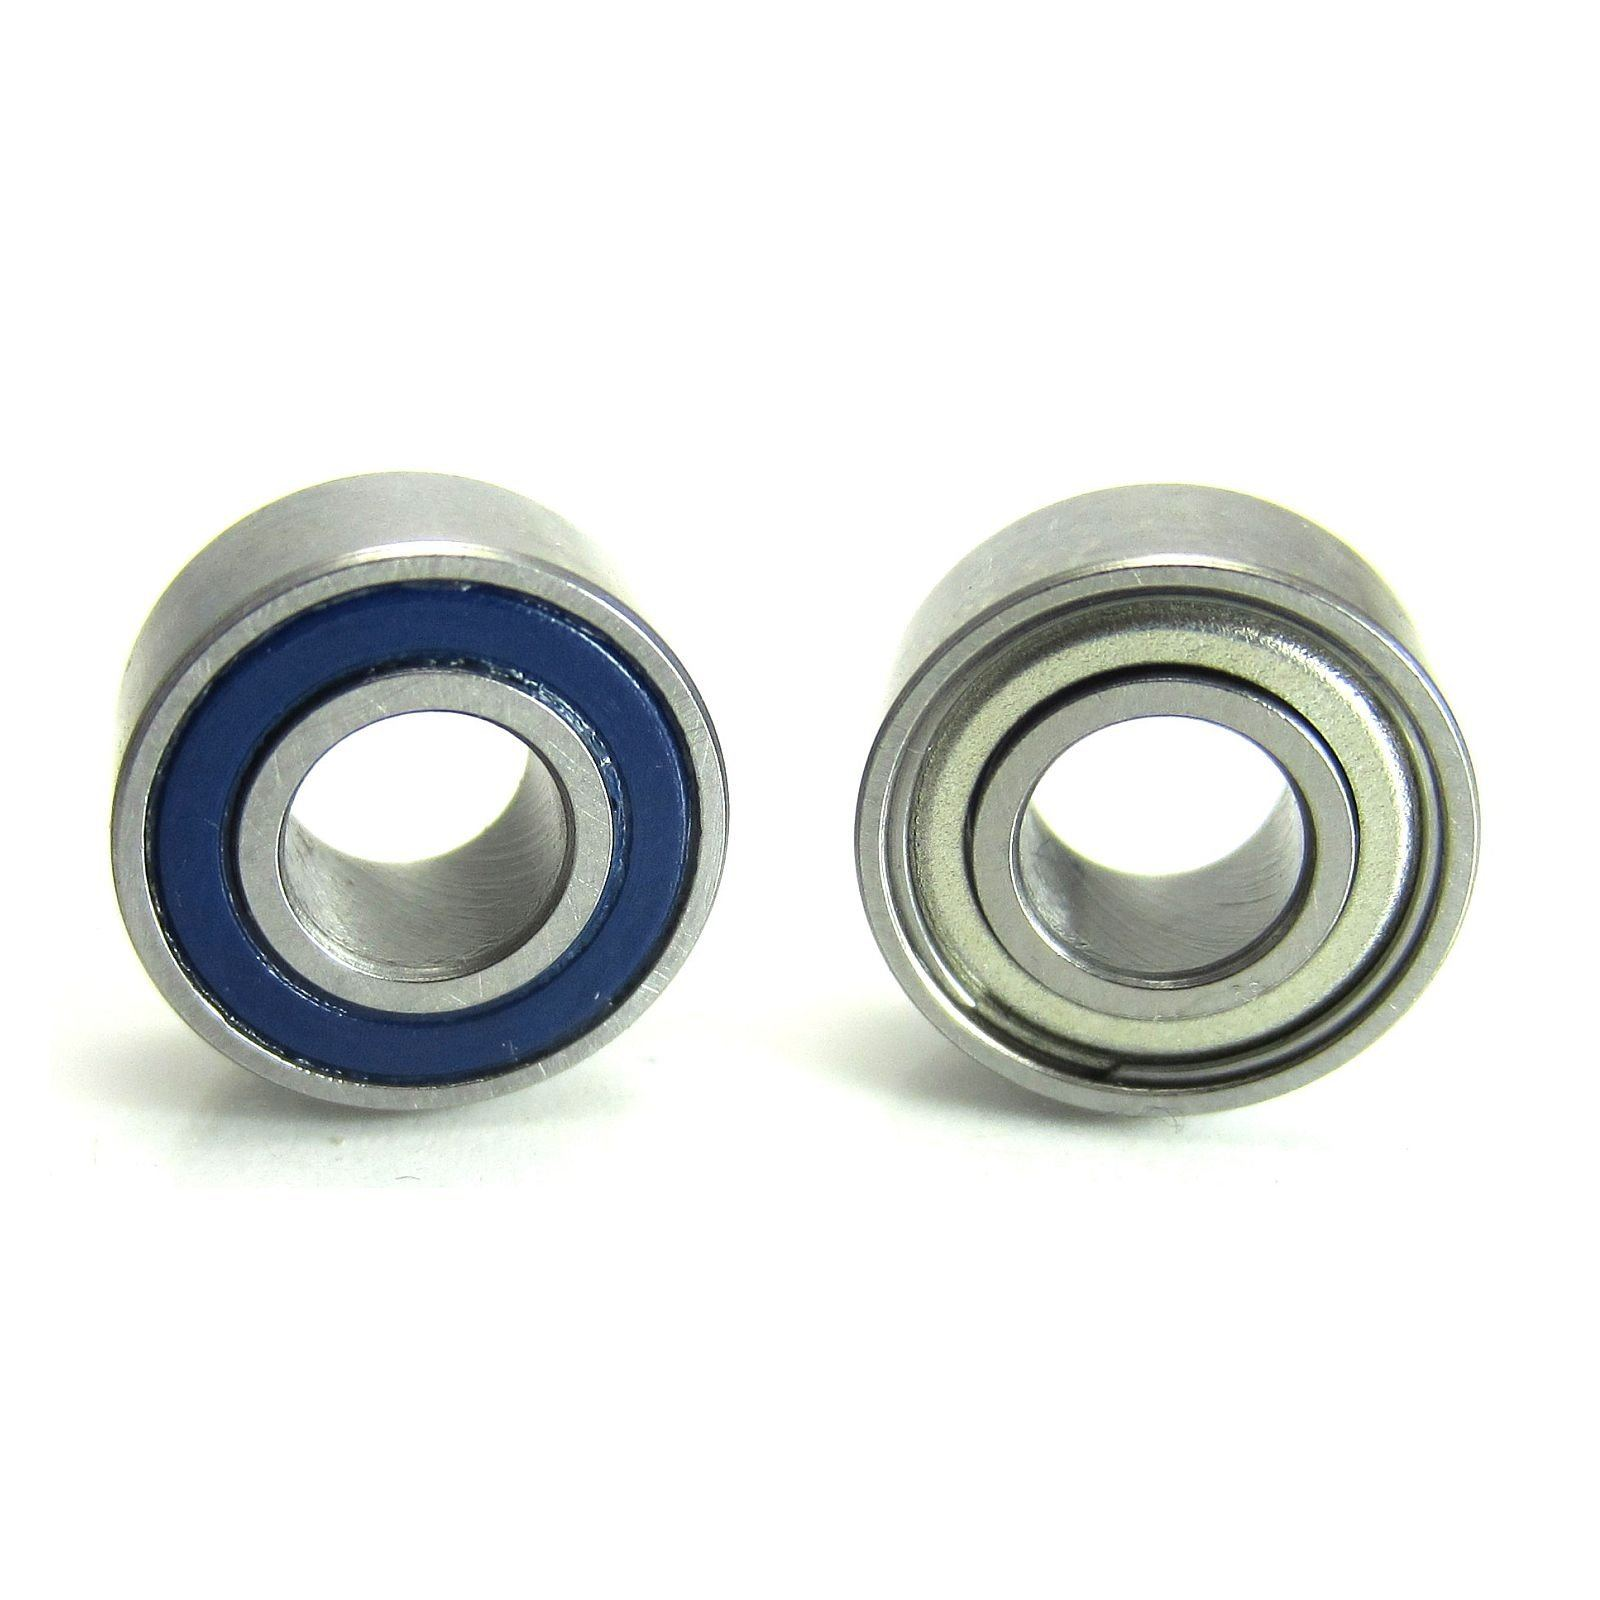 TRB RC 5x11x5mm Hybrid Ceramic Brushless Motor Ball Bearings (2) - trb-rc-bearings